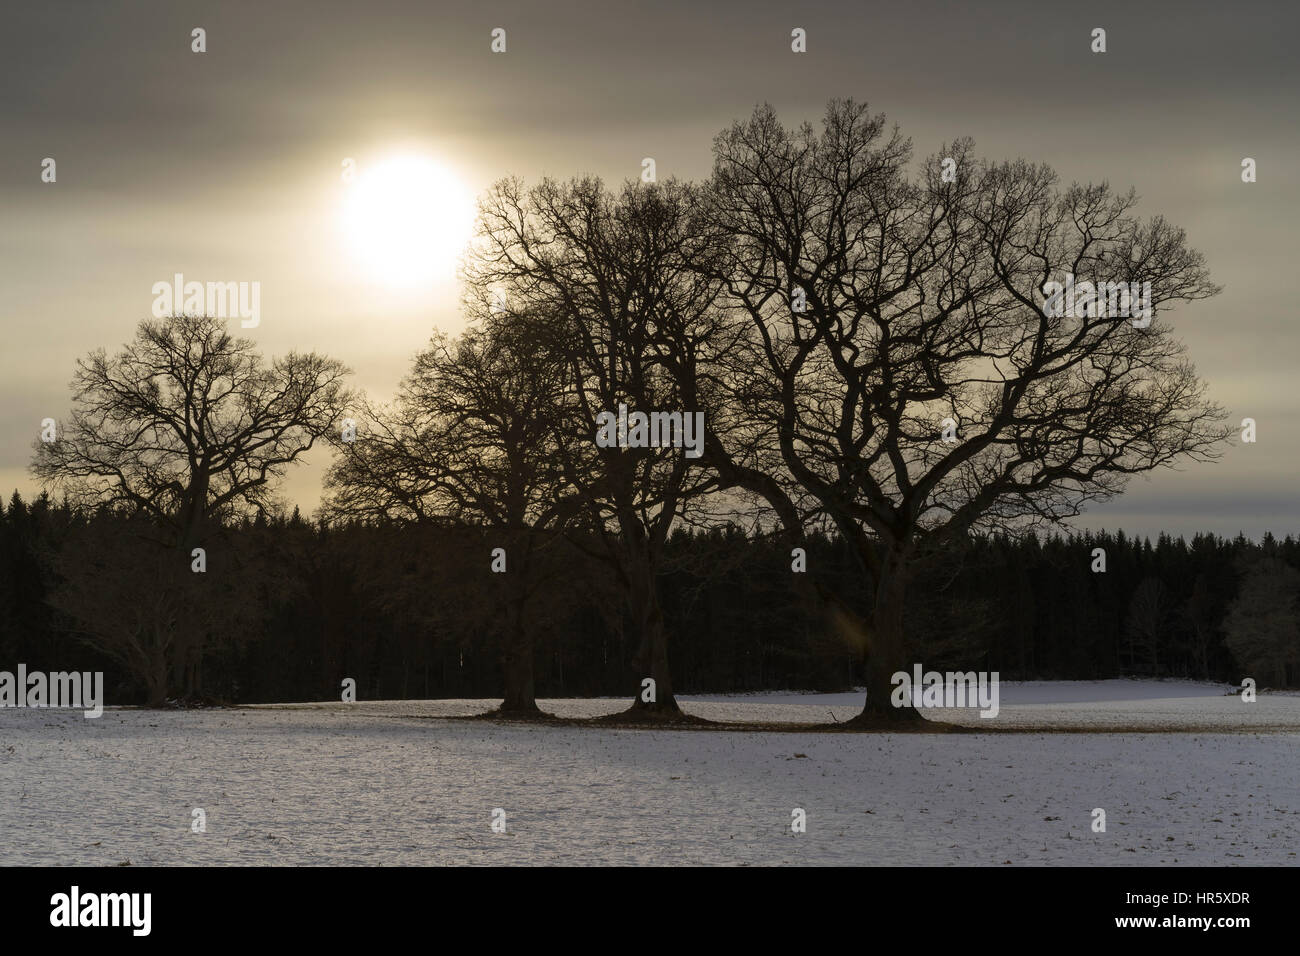 Oak trees and the sun. Nature and landscape in Sweden Scandinavia Europe. Cold winter day with snow on the ground. Stock Photo